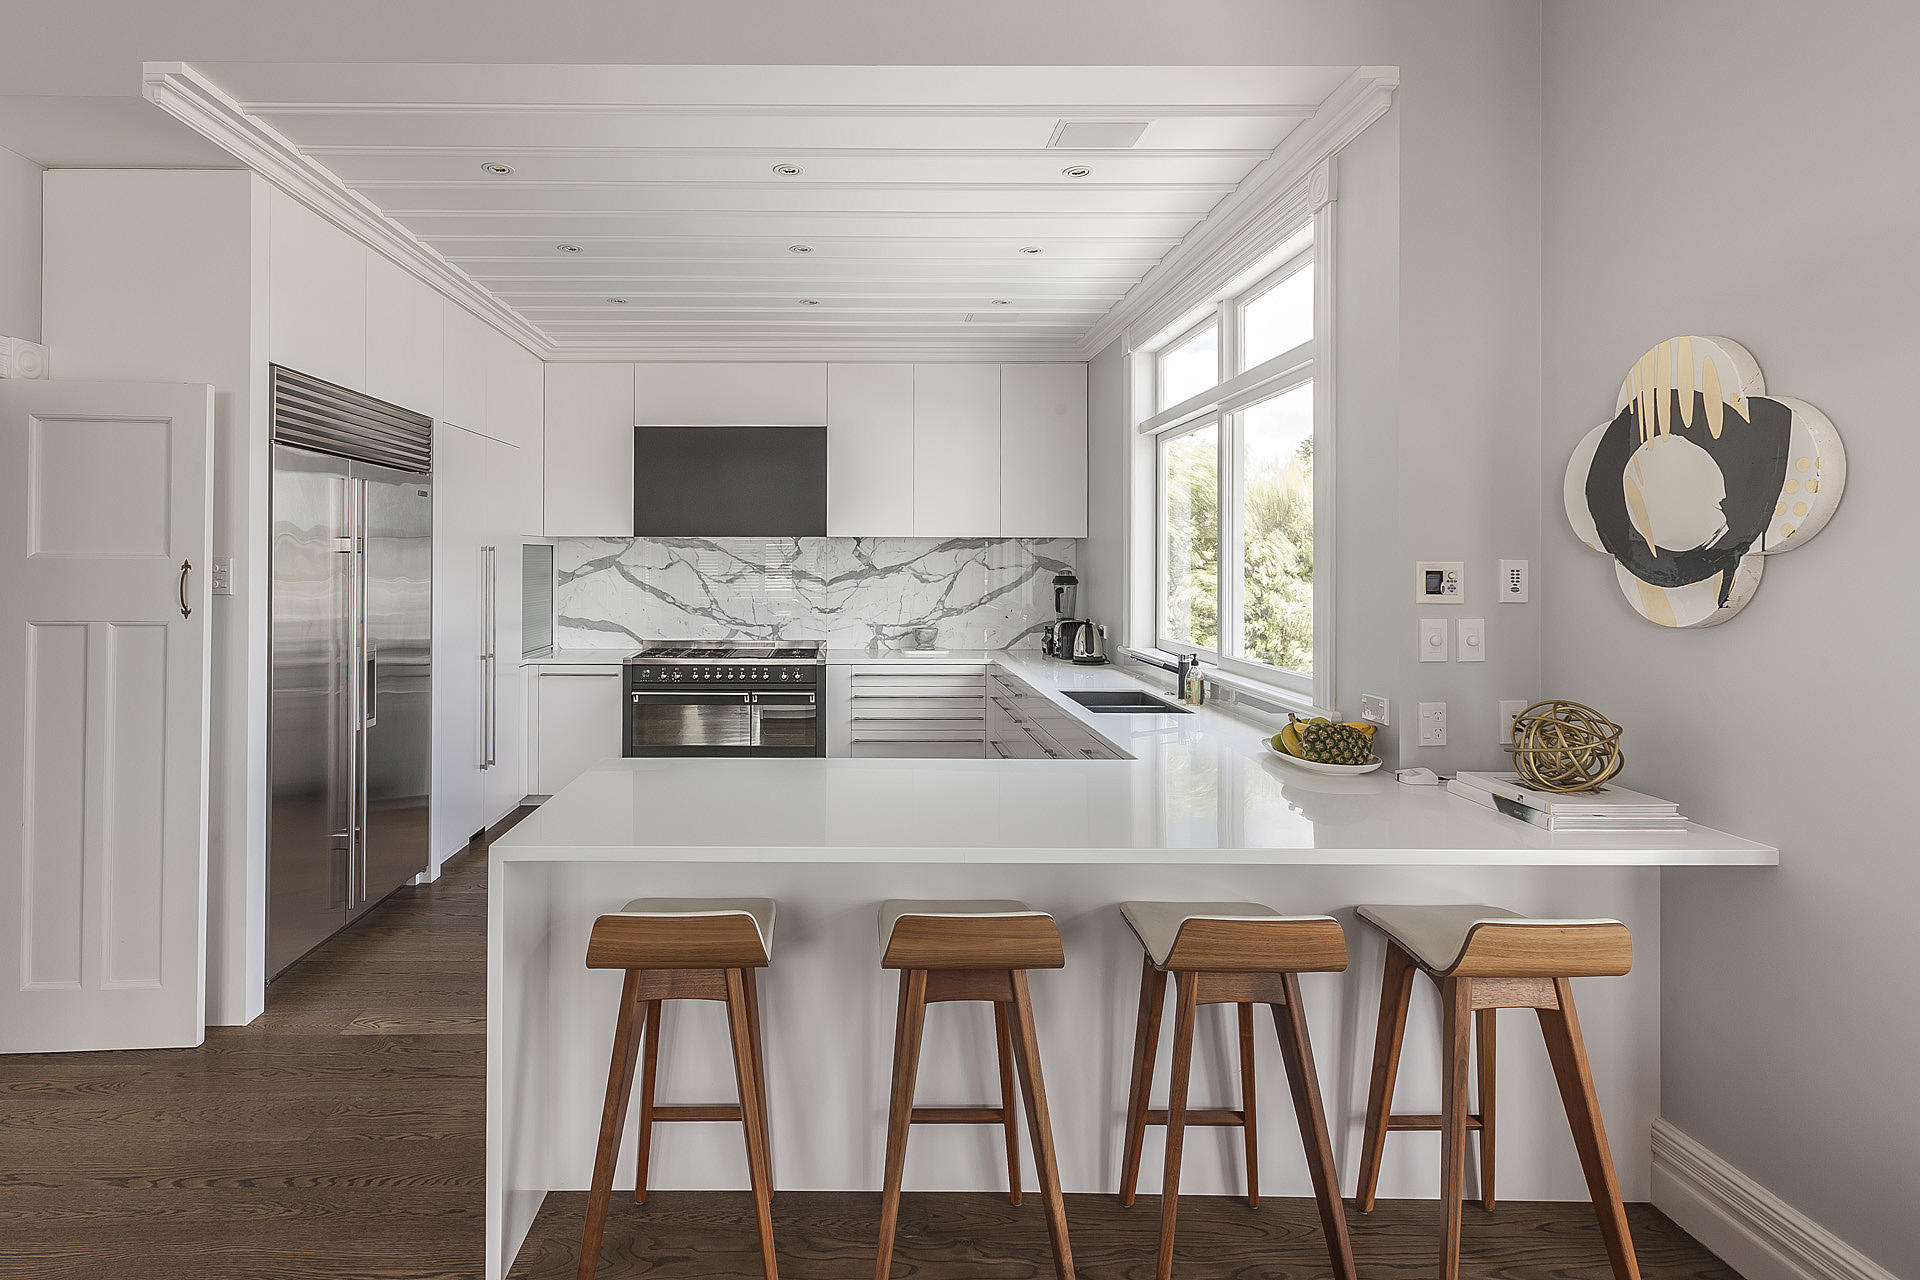 L Shaped Kitchens With Islands Seaview Tce Remuera Form Design